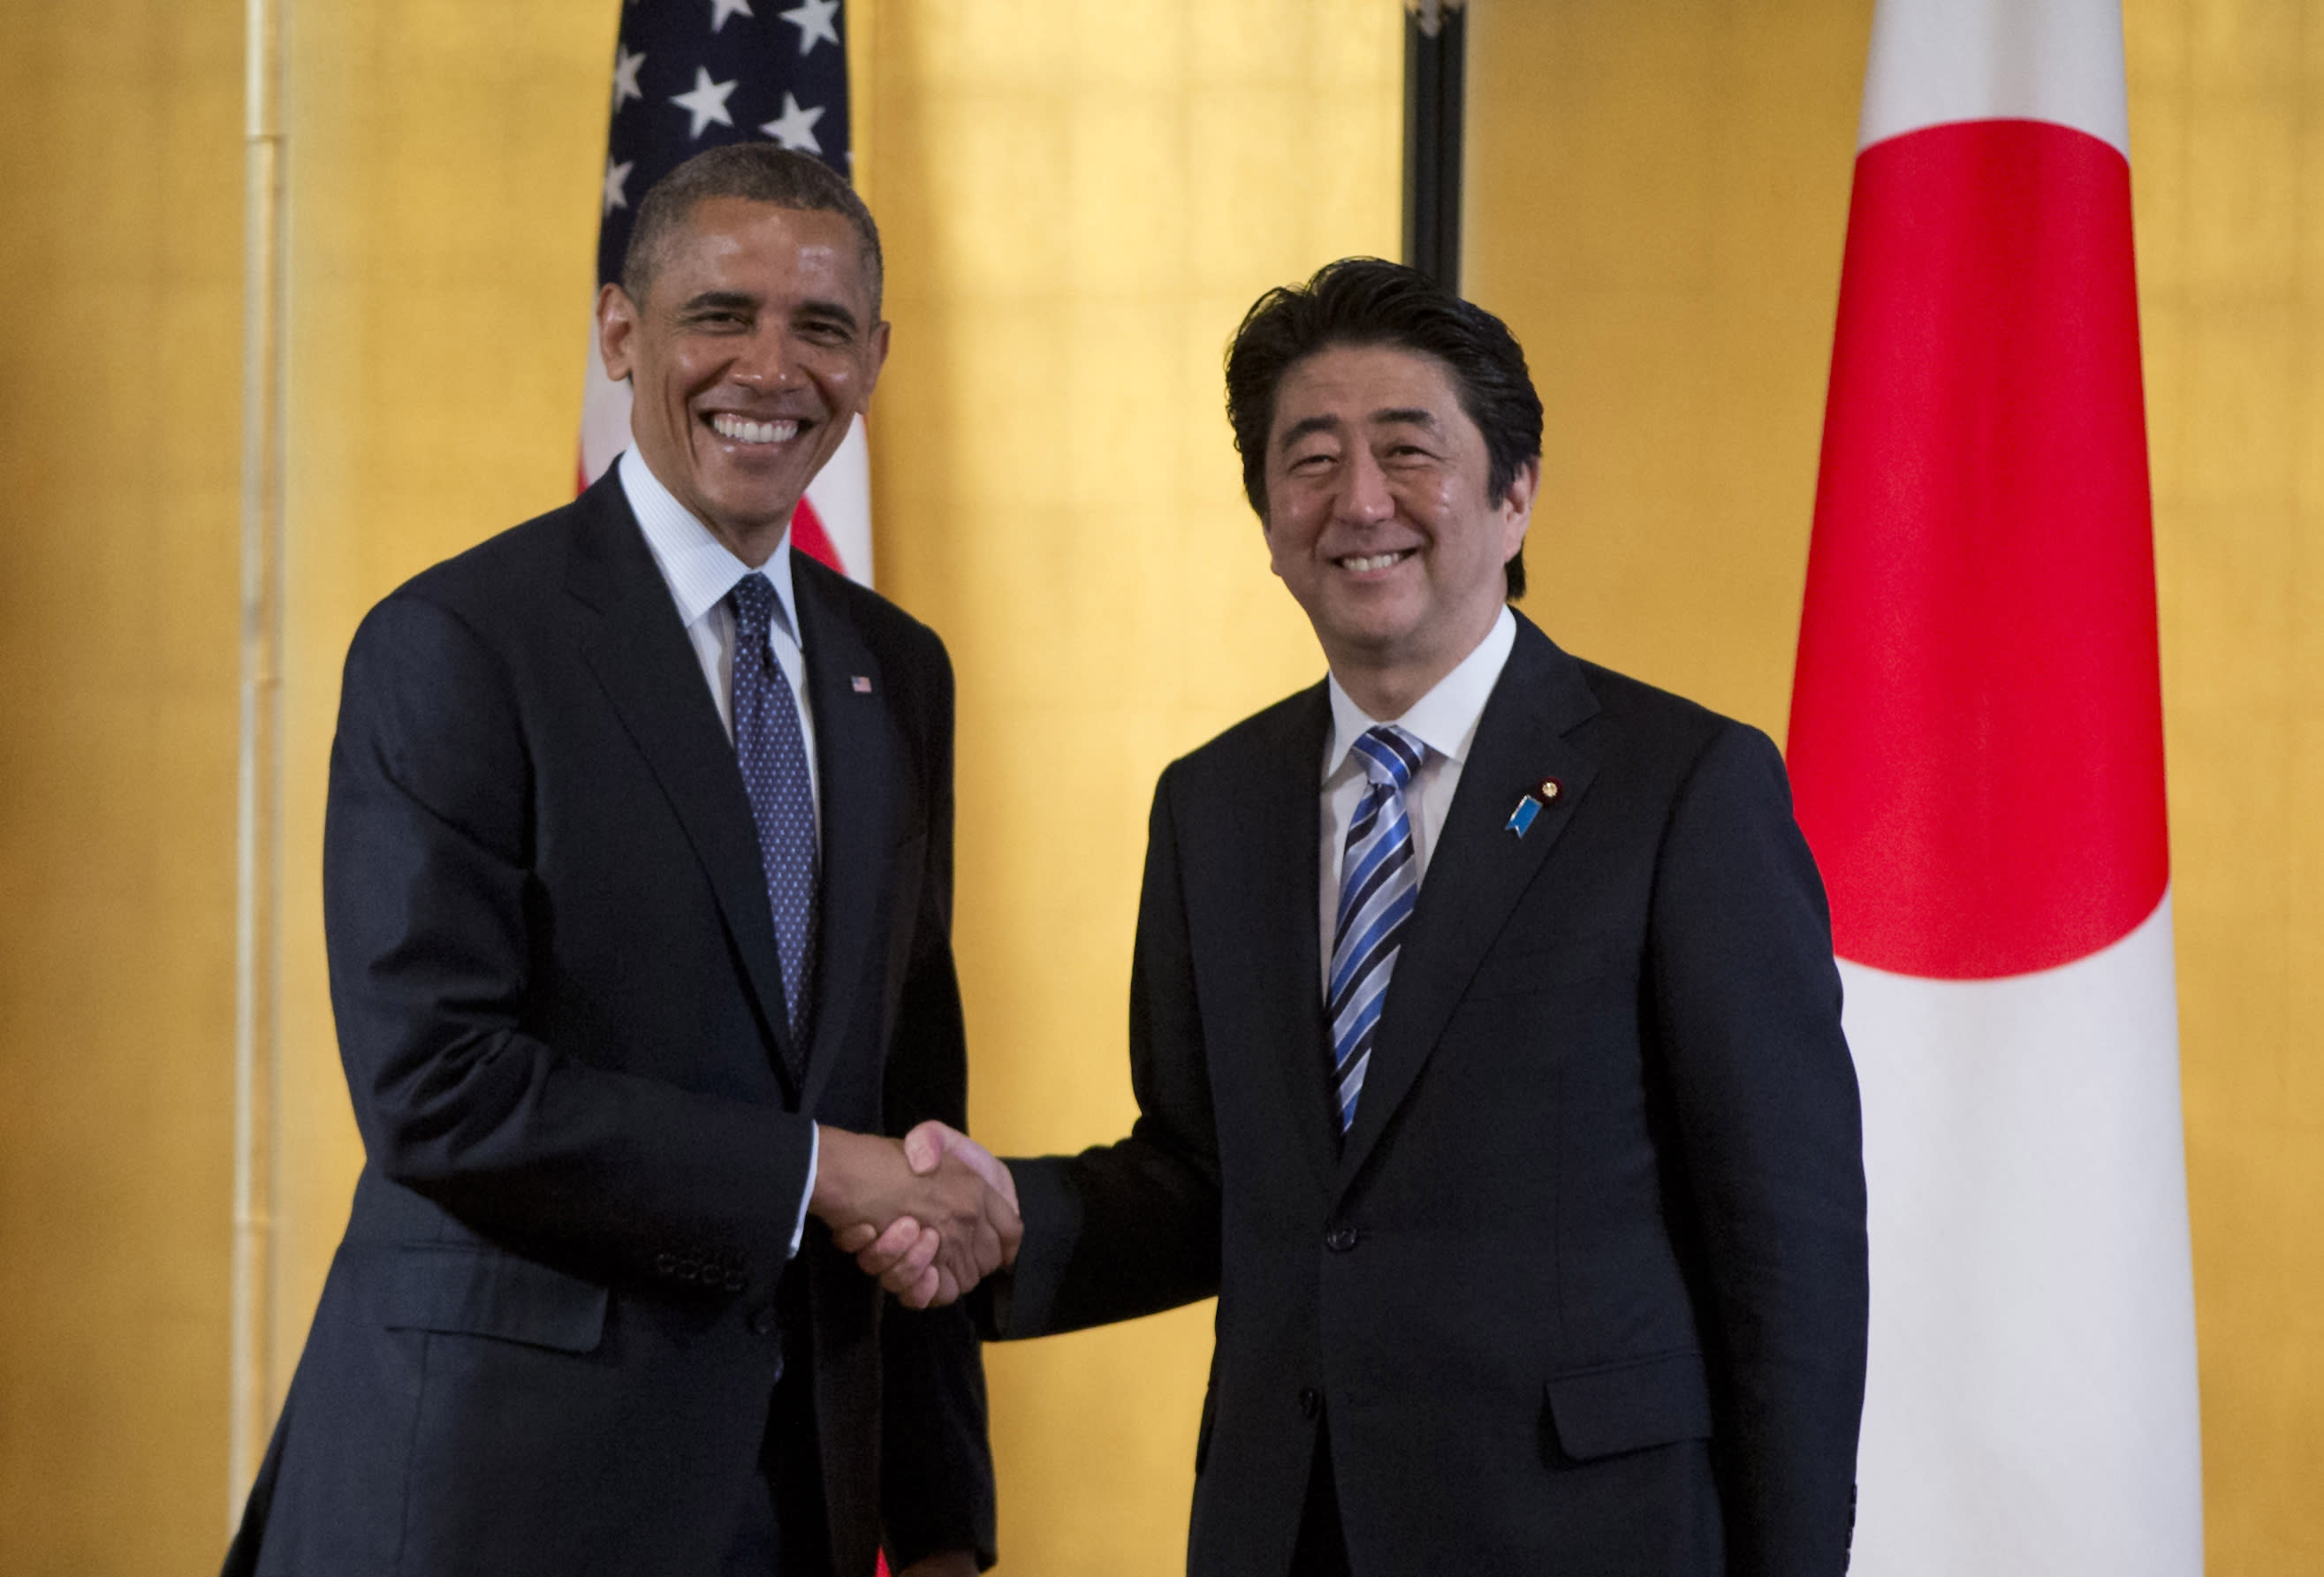 No trade breakthrough expected with Japan during Abe visit